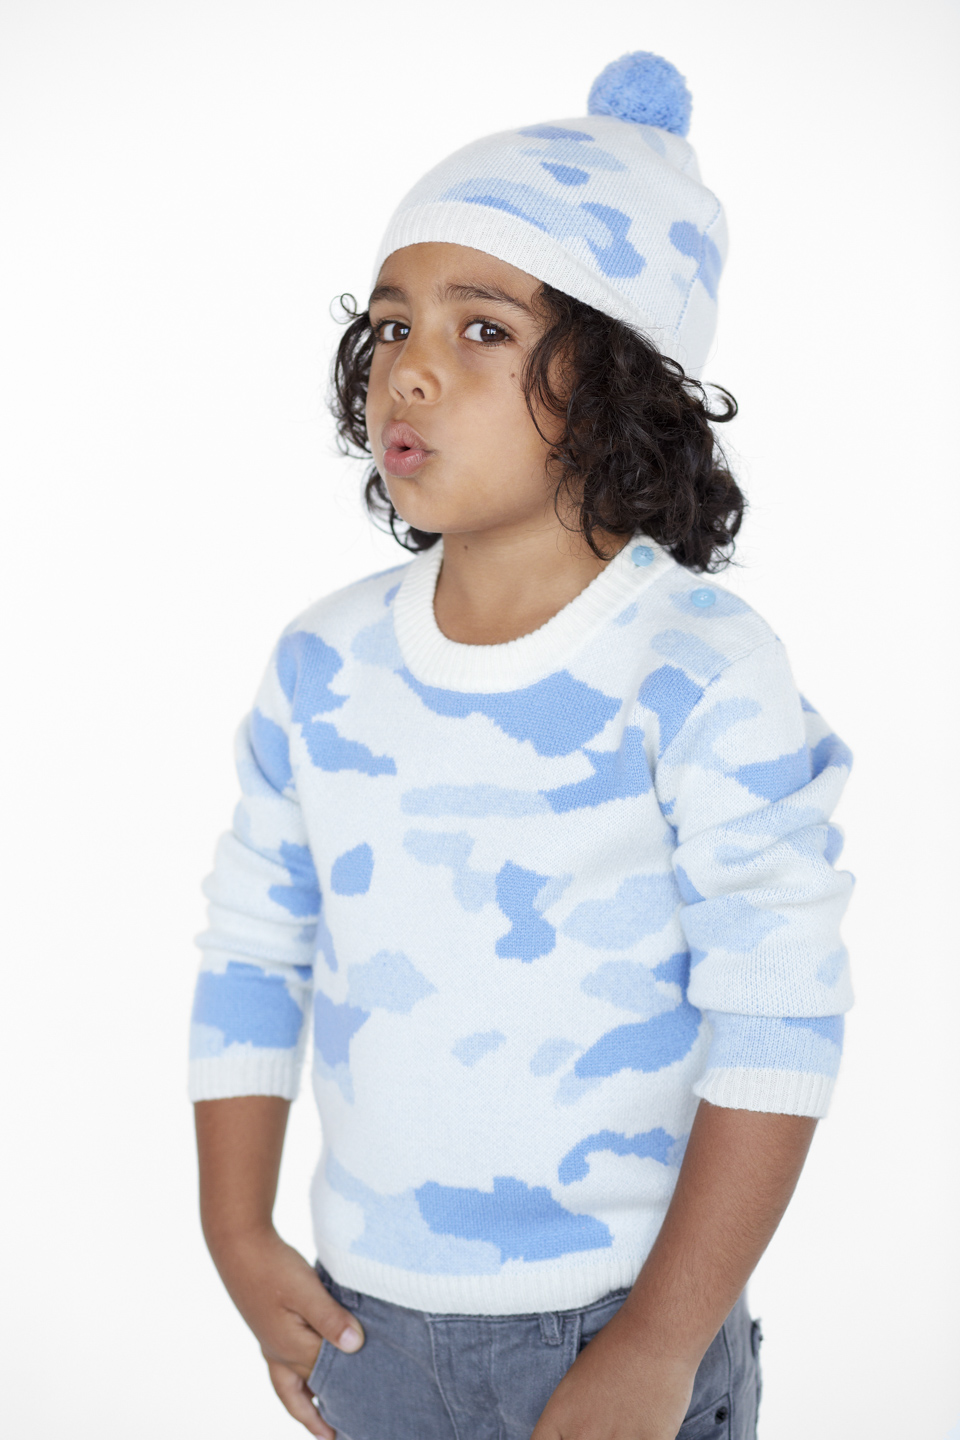 Atelier Child_FW15_The Camo Blue Sweater 2_Hi Res_Hi Res.jpg